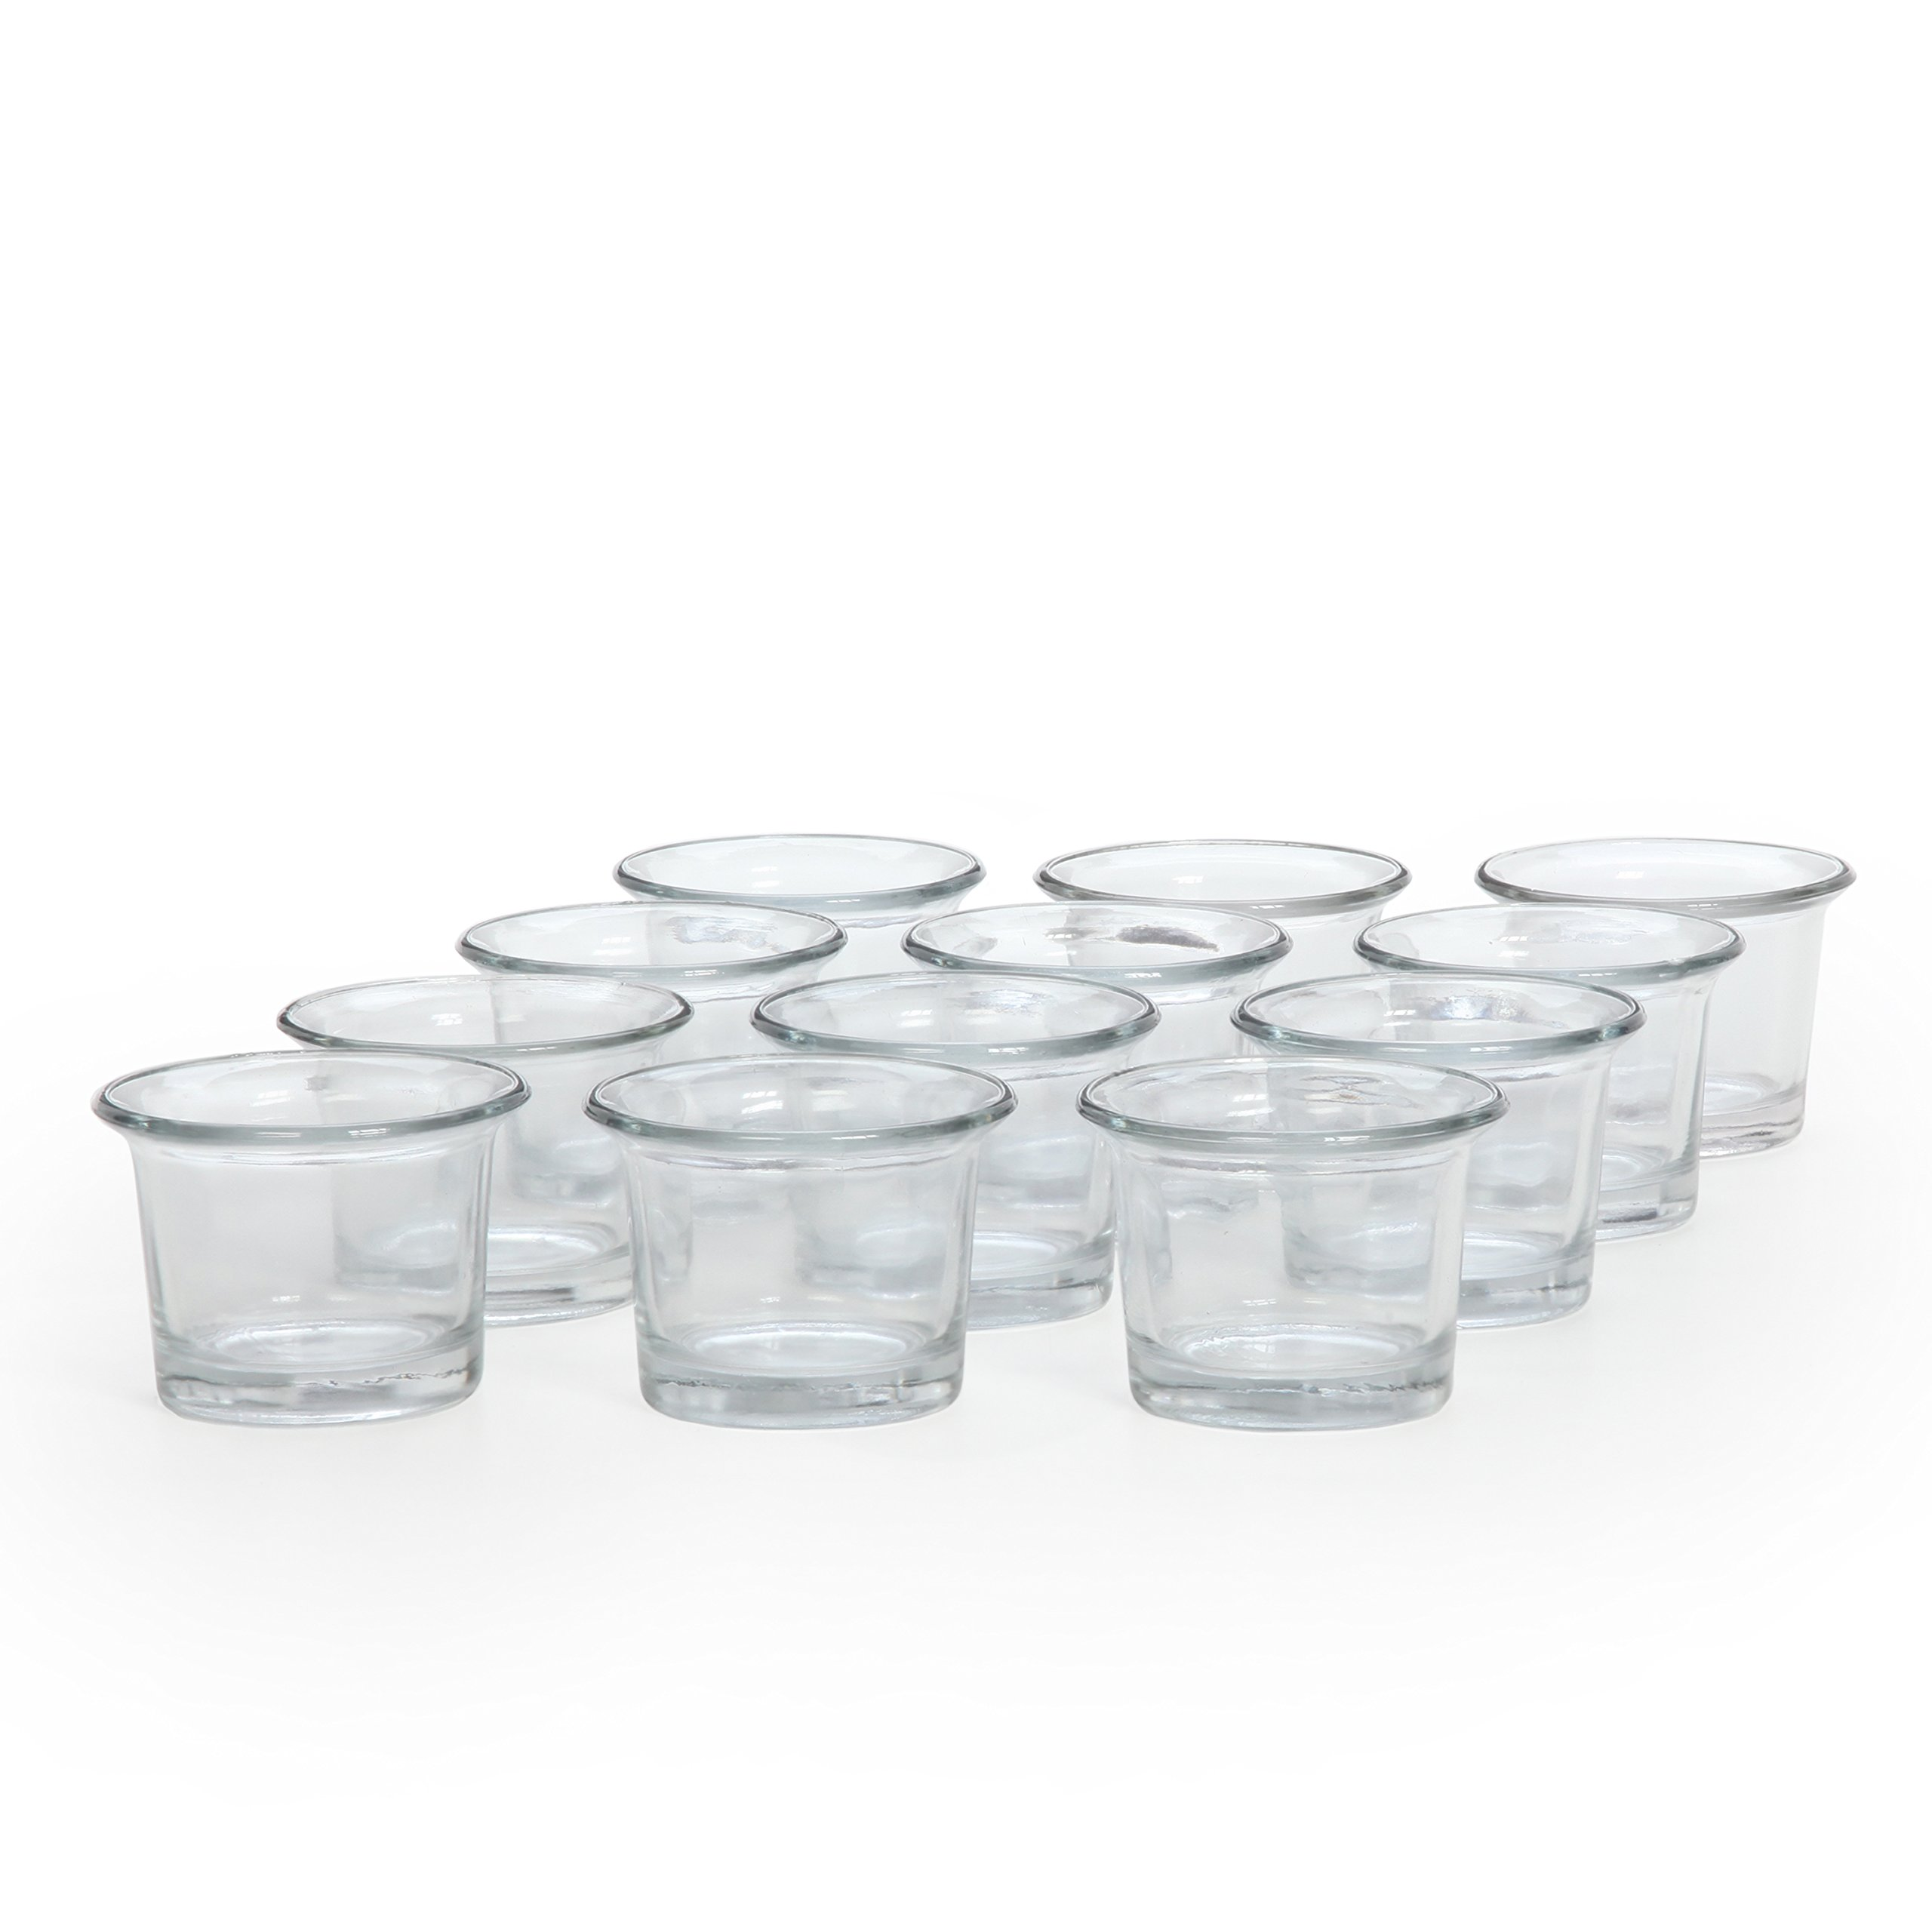 Hosley Set of 12 Clear Glass Oyster Tea Light Holders - 2.5'' Diameter. Ideal Gift for Spa, Aromatherapy, Weddings, Tealights, Votive Candle Gardens